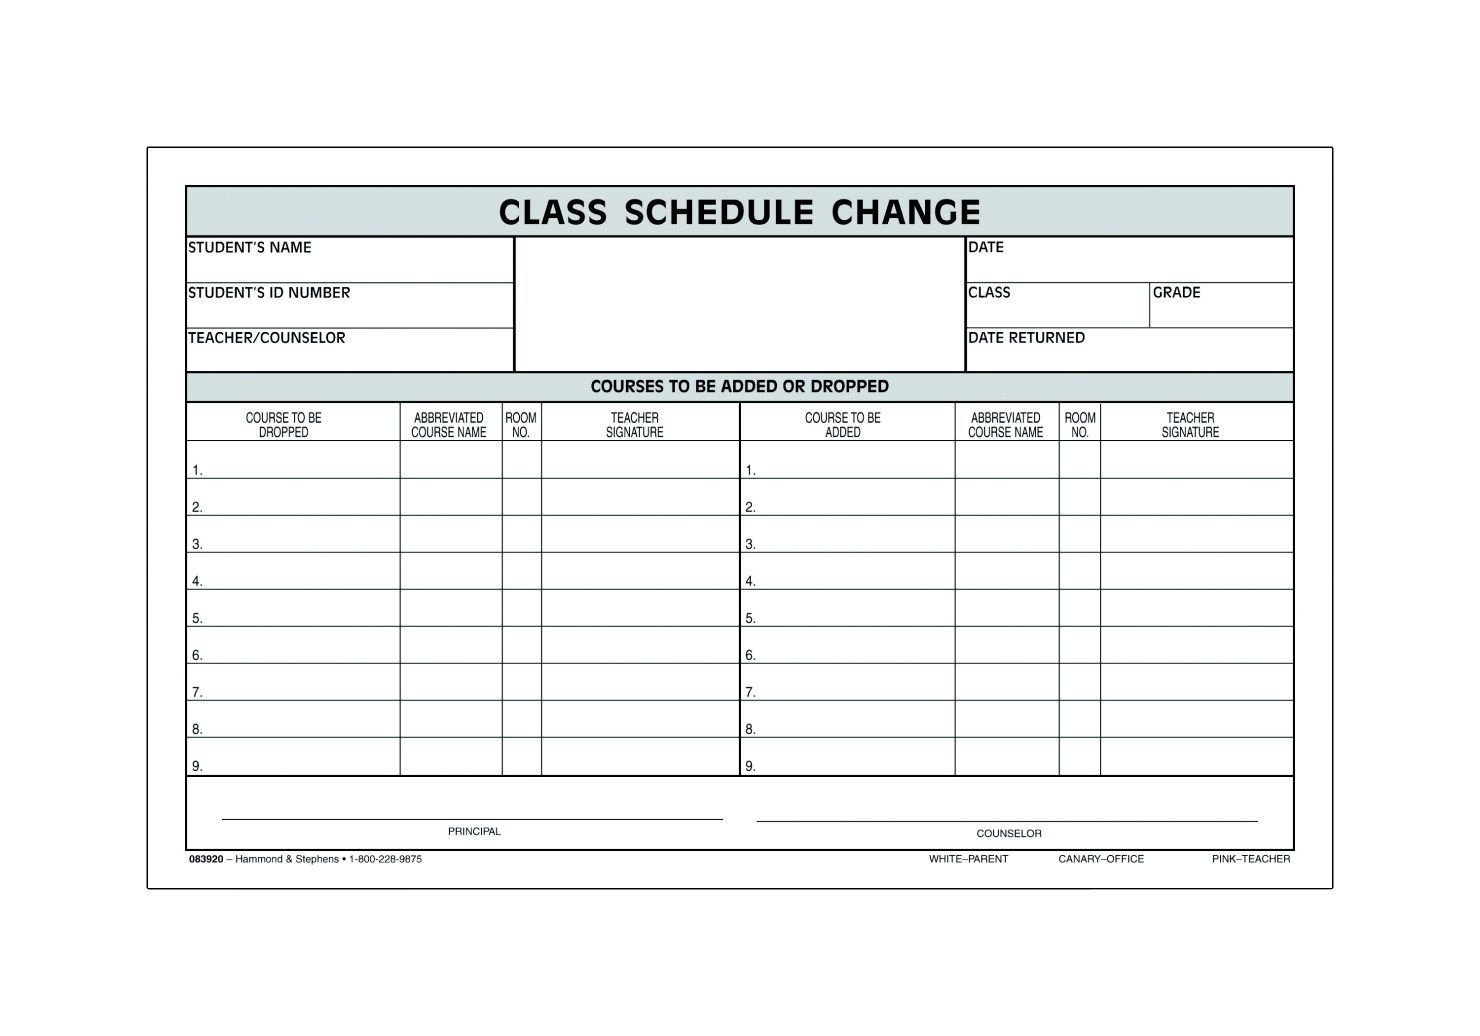 Hammond & Stephens 3 Parts Carbonless Class Schedule Change